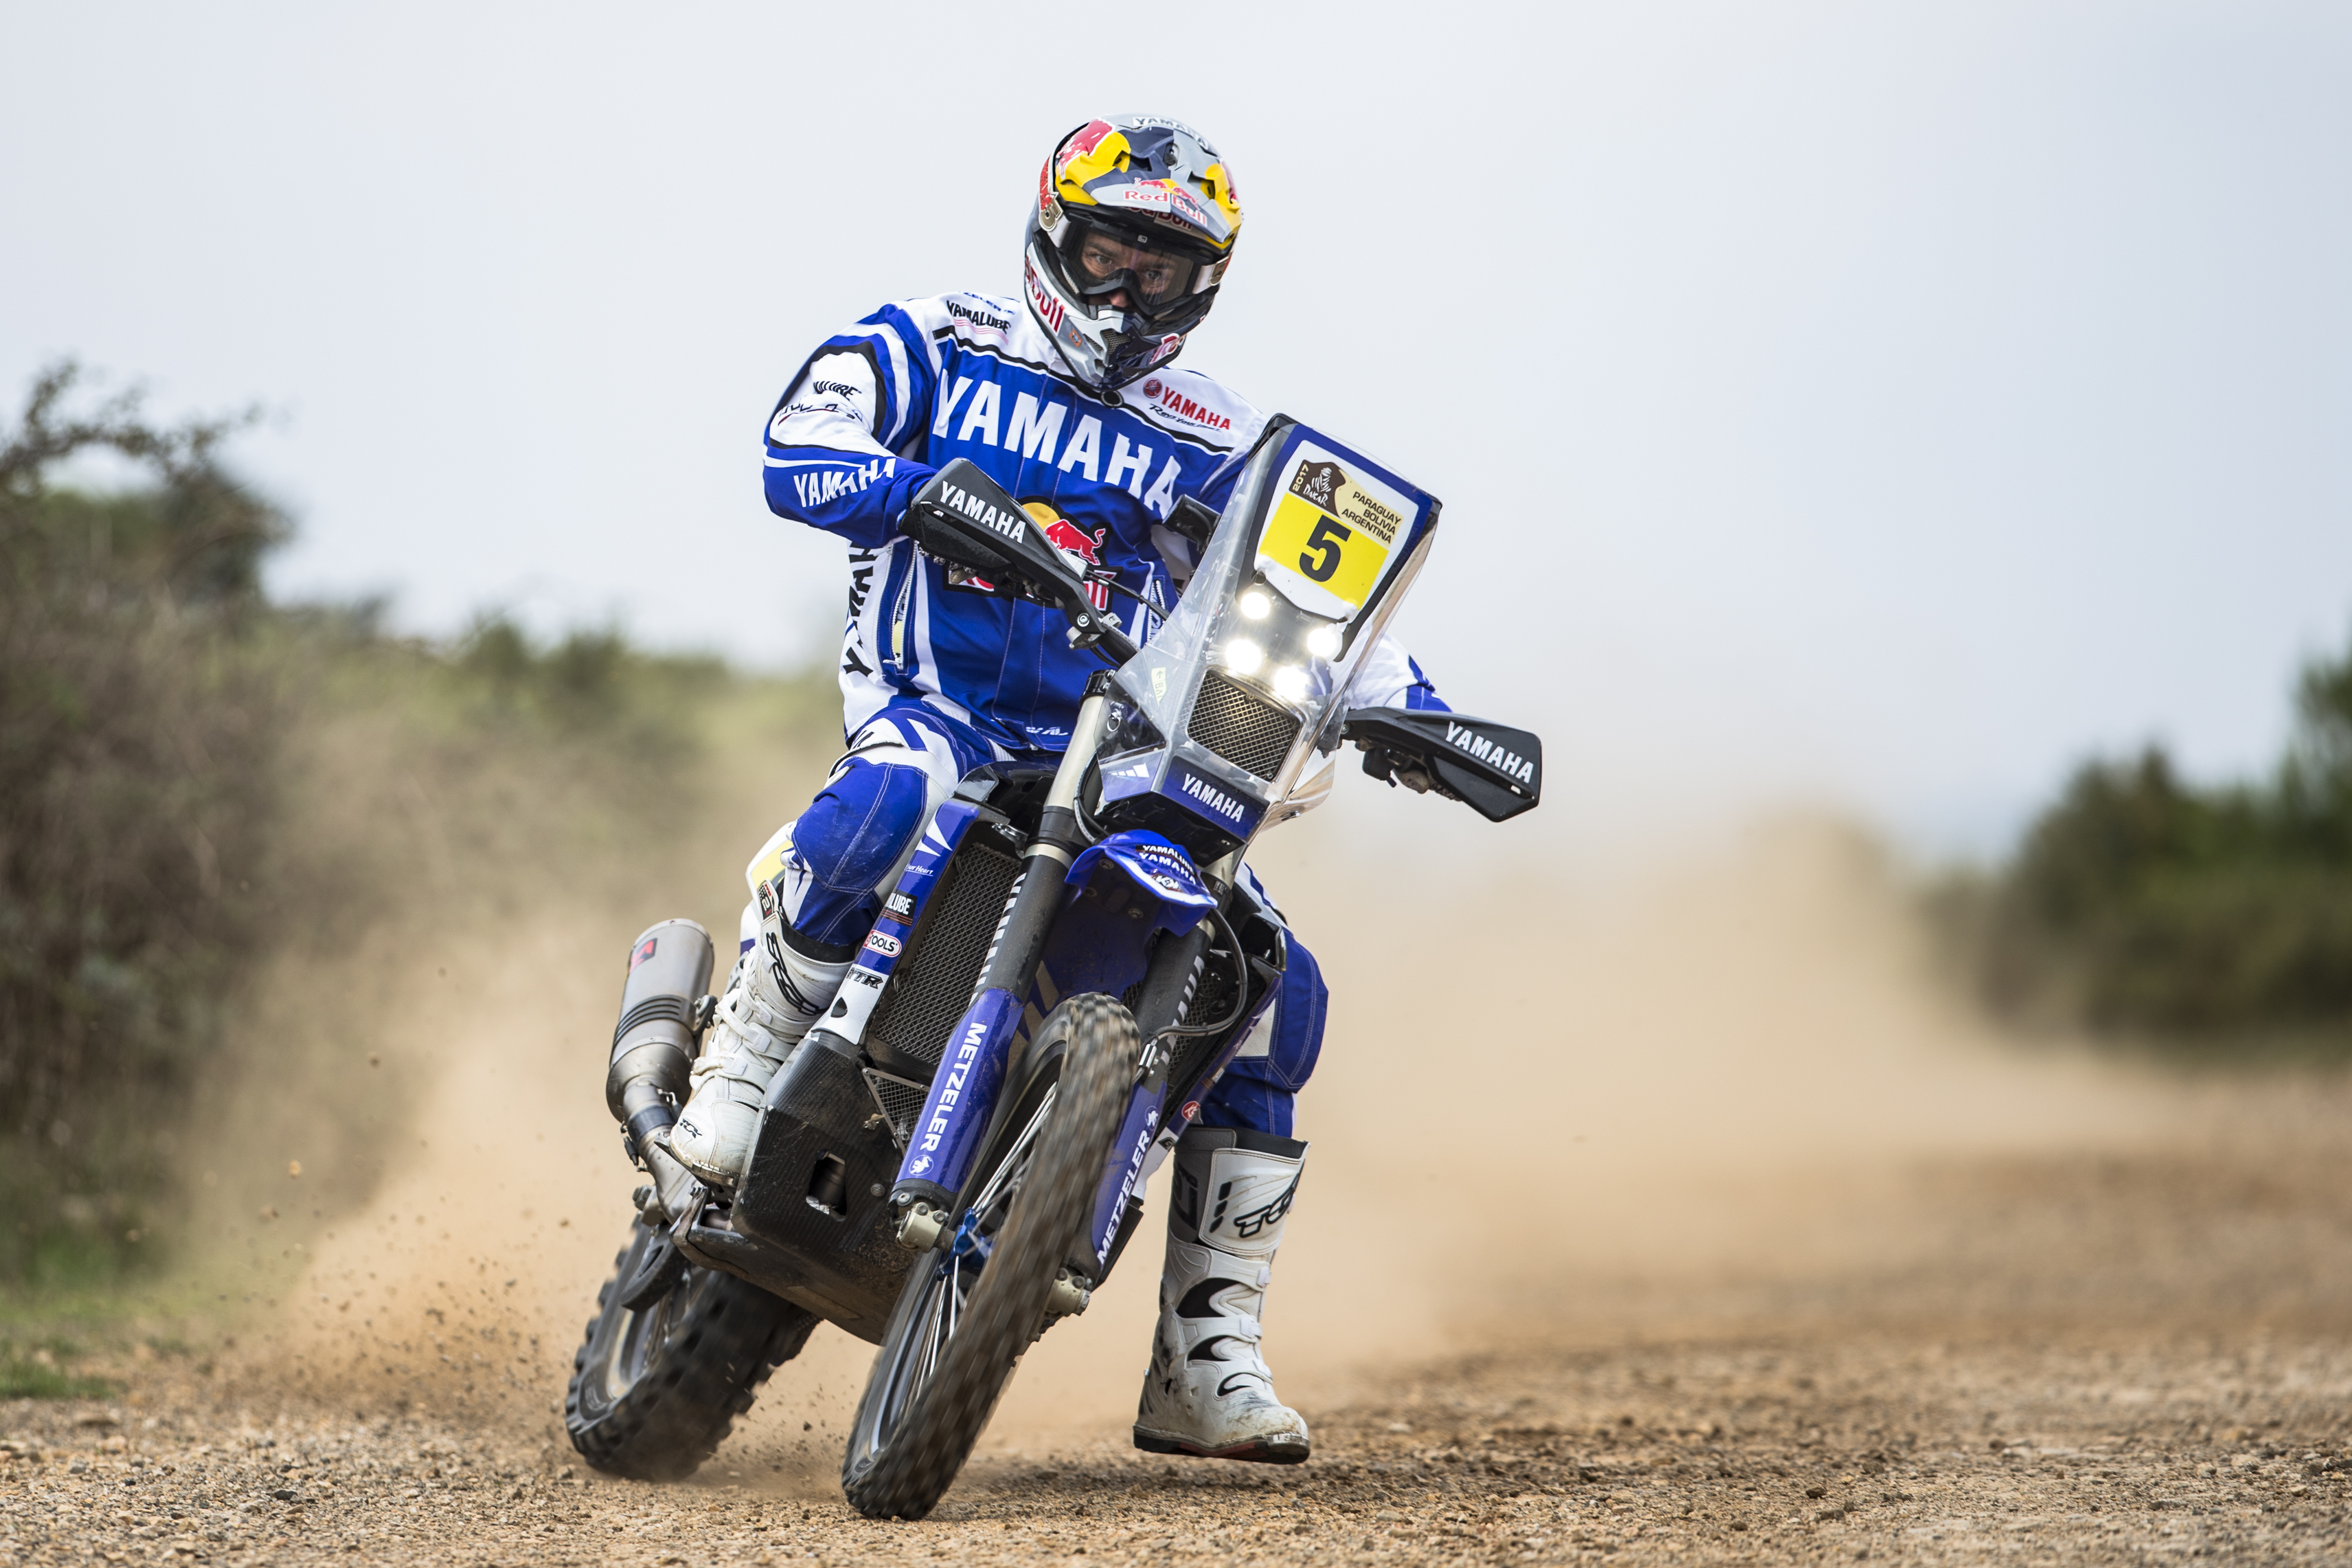 The 2017 WR450F Rally is set for Dakar Challenge - Yamaha Racing